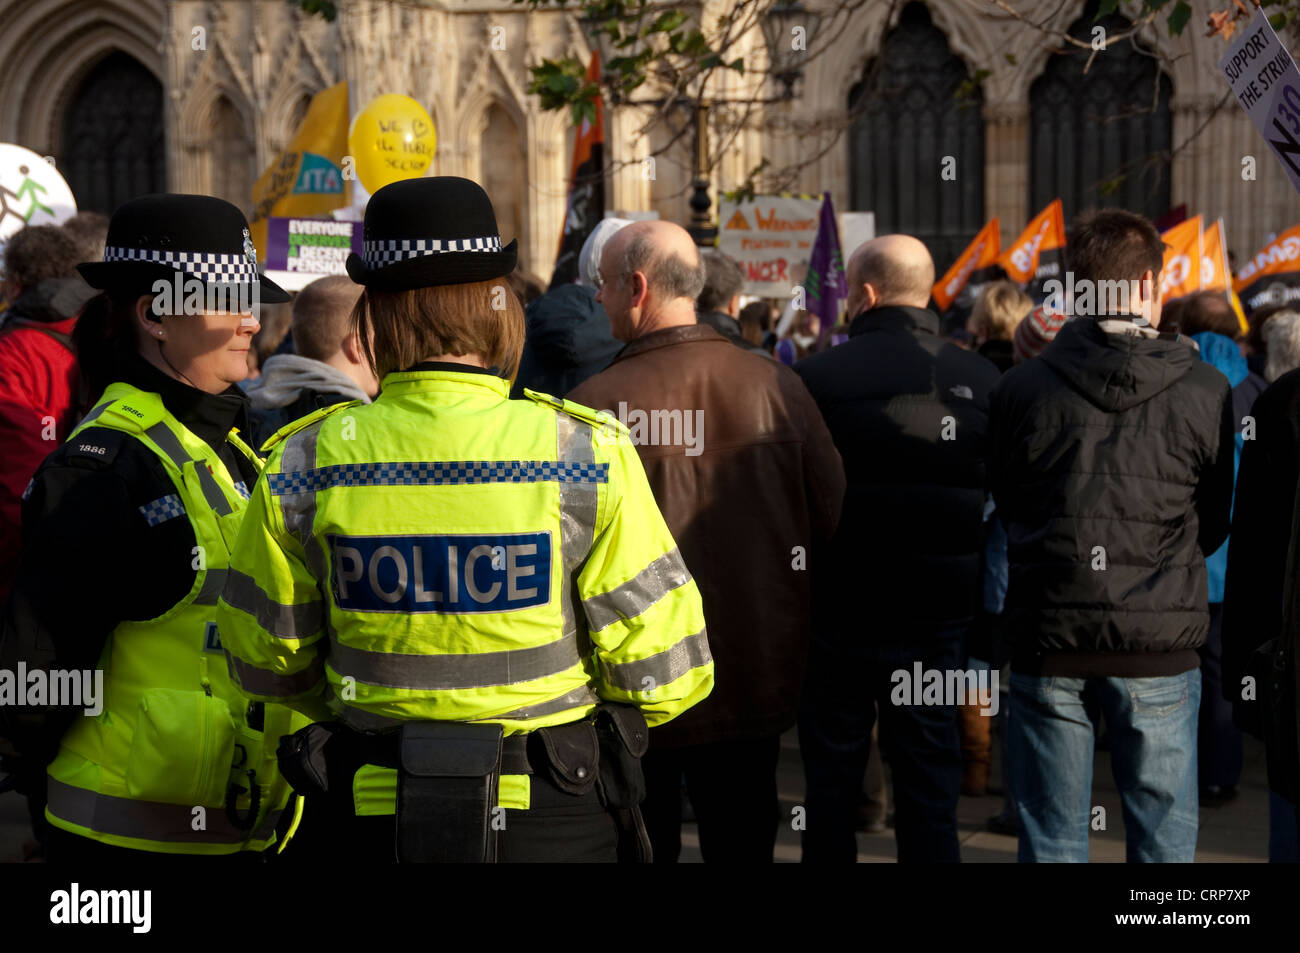 Police women on duty at a protest by UNISON trade union members outside York Minster. - Stock Image